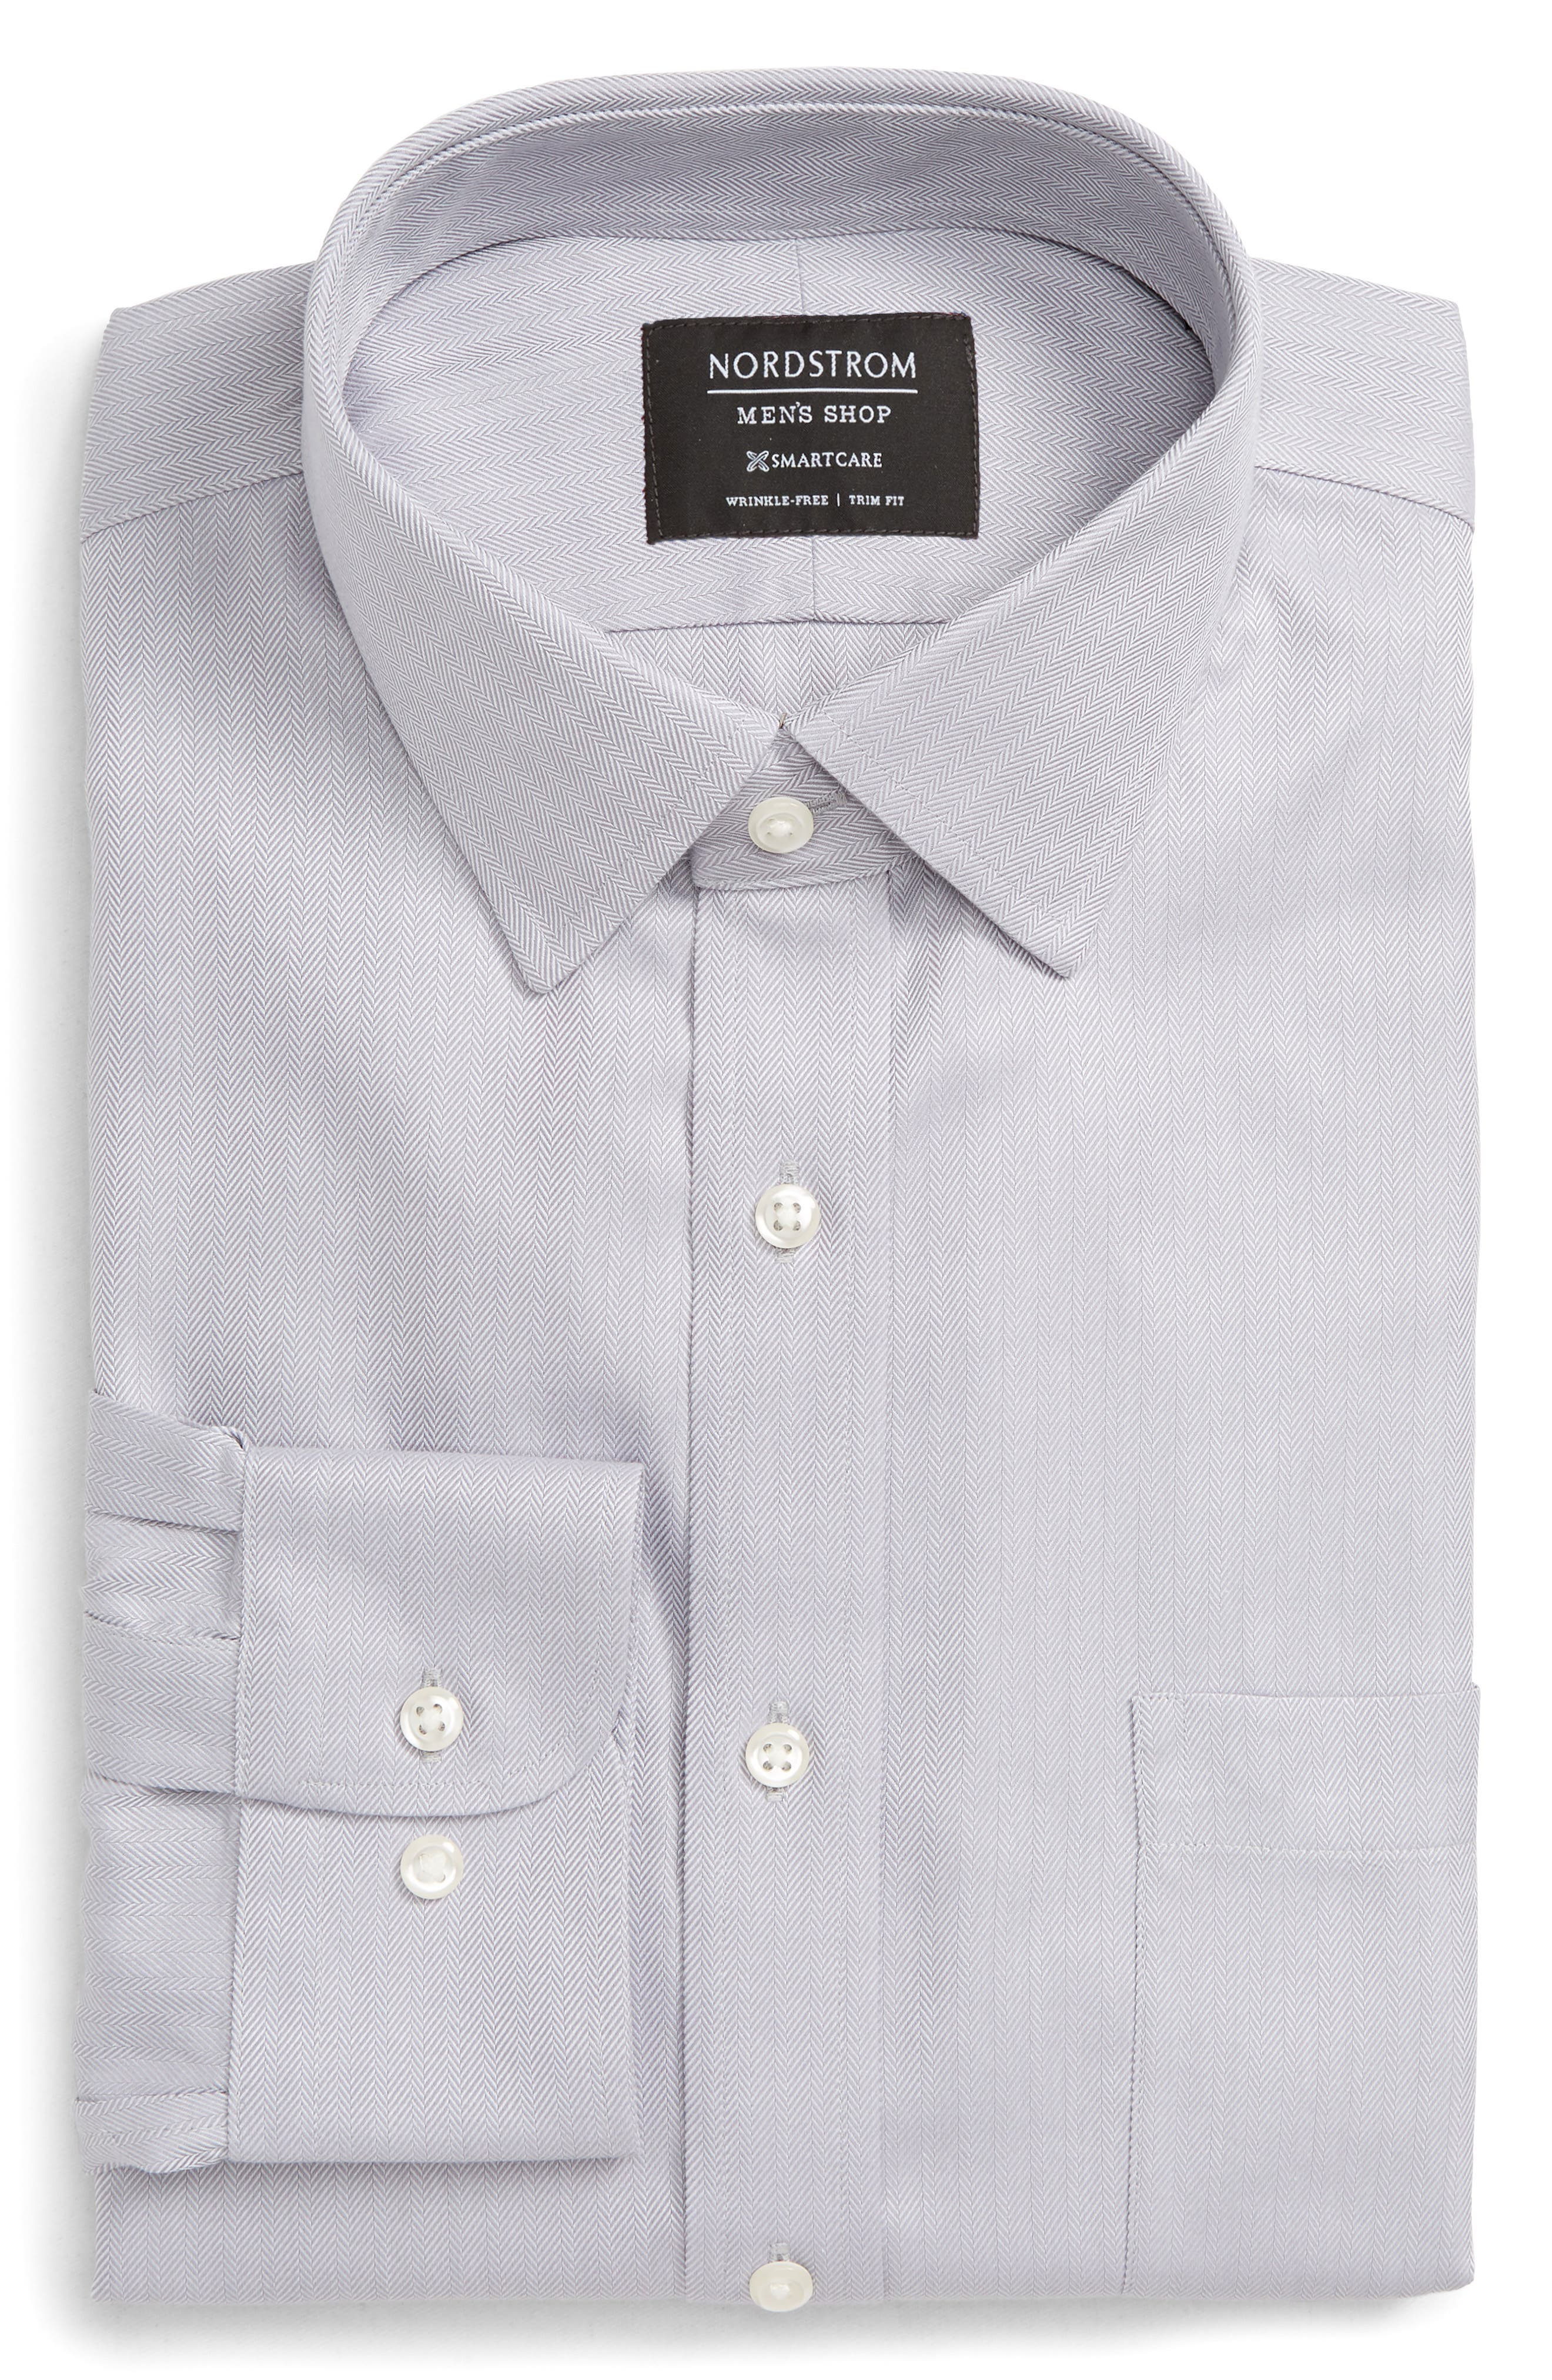 NORDSTROM MEN'S SHOP, Smartcare<sup>™</sup> Trim Fit Herringbone Dress Shirt, Alternate thumbnail 5, color, GREY DECEMBER